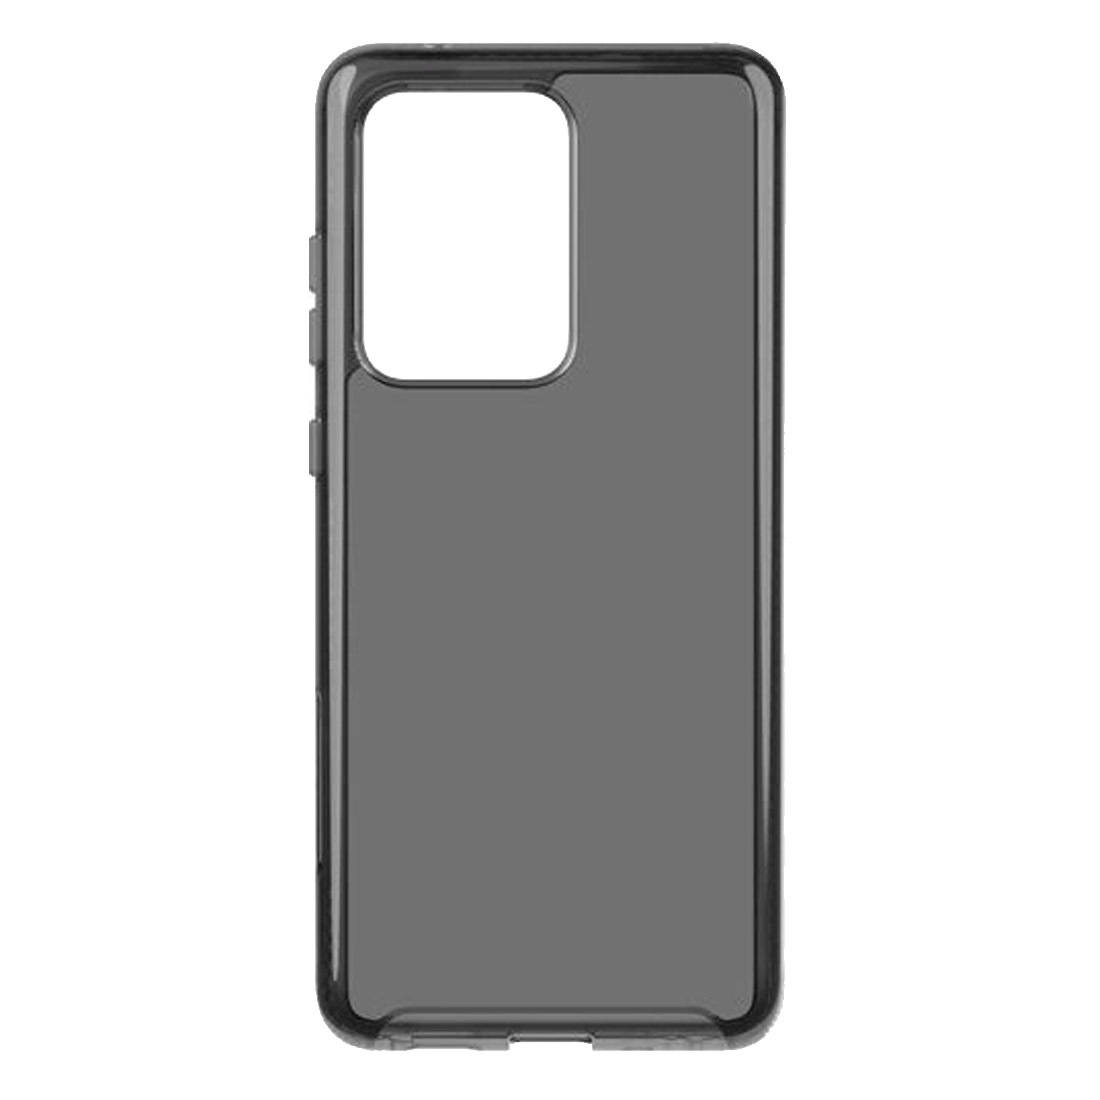 Tech21 Pure Tint Case for Samsung Galaxy S20 Ultra T21-7705 - Carbon